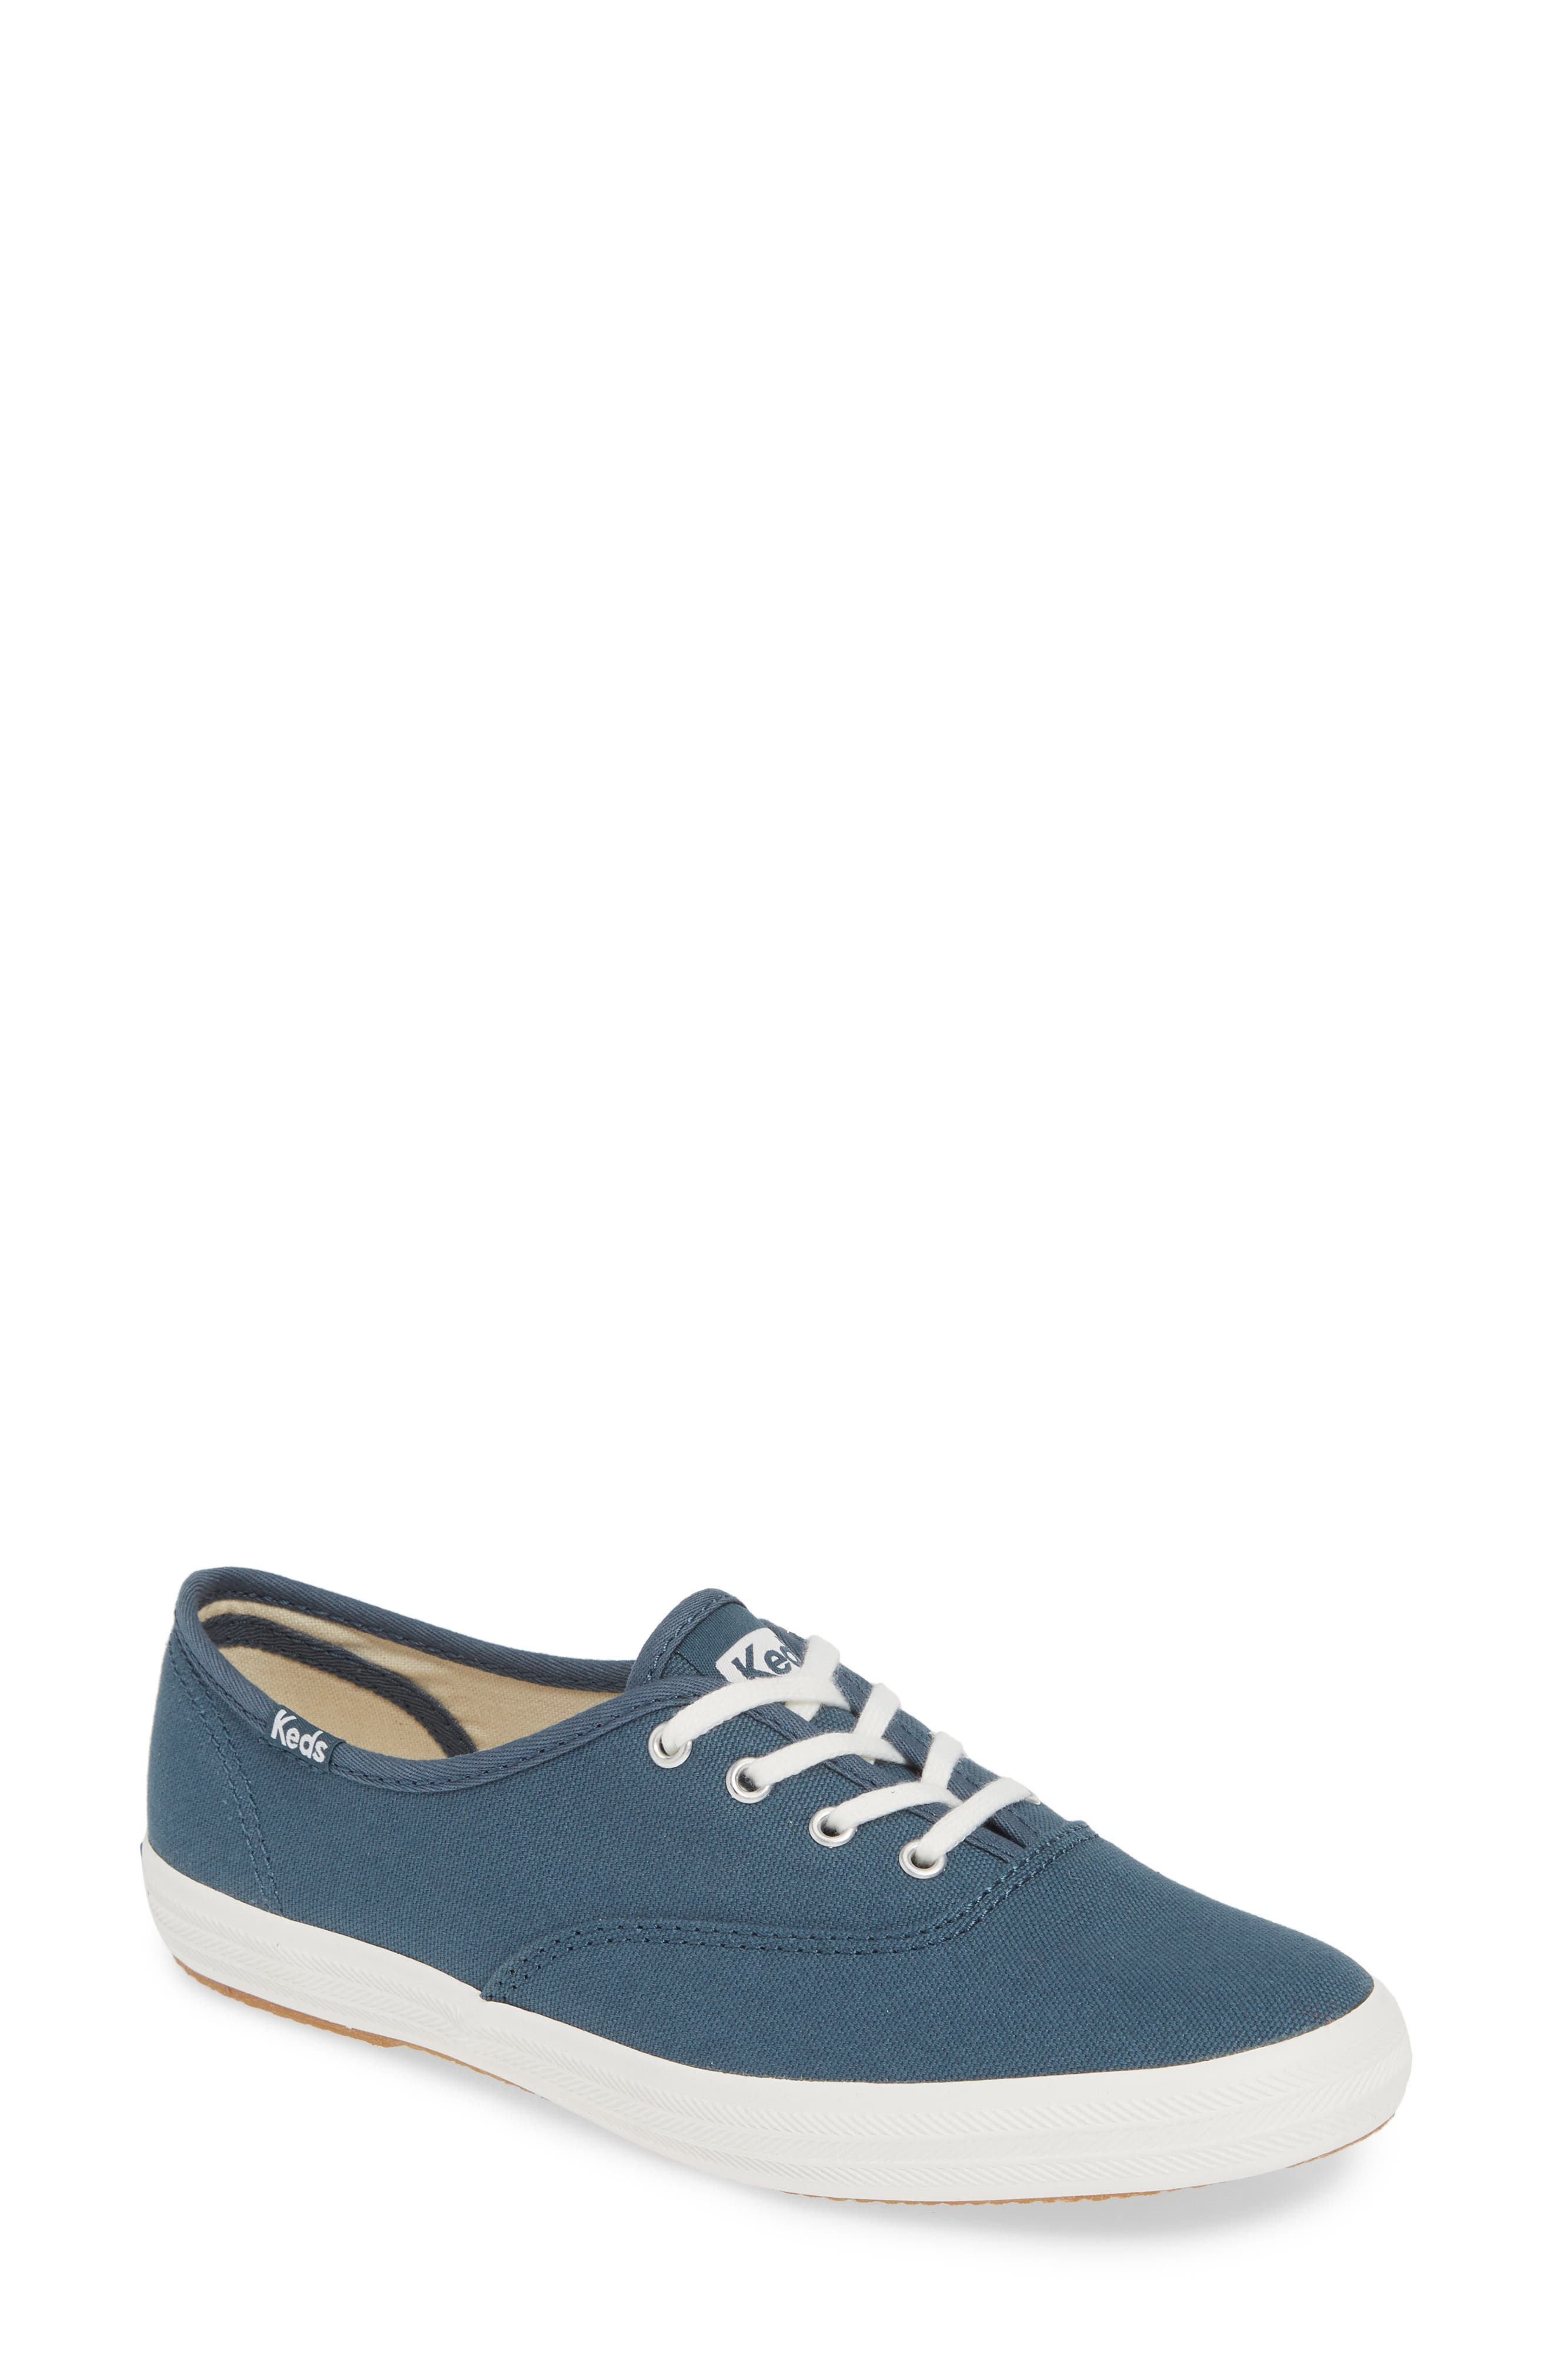 127f606dc89f2 Keds Champion Solid Sneaker- Blue